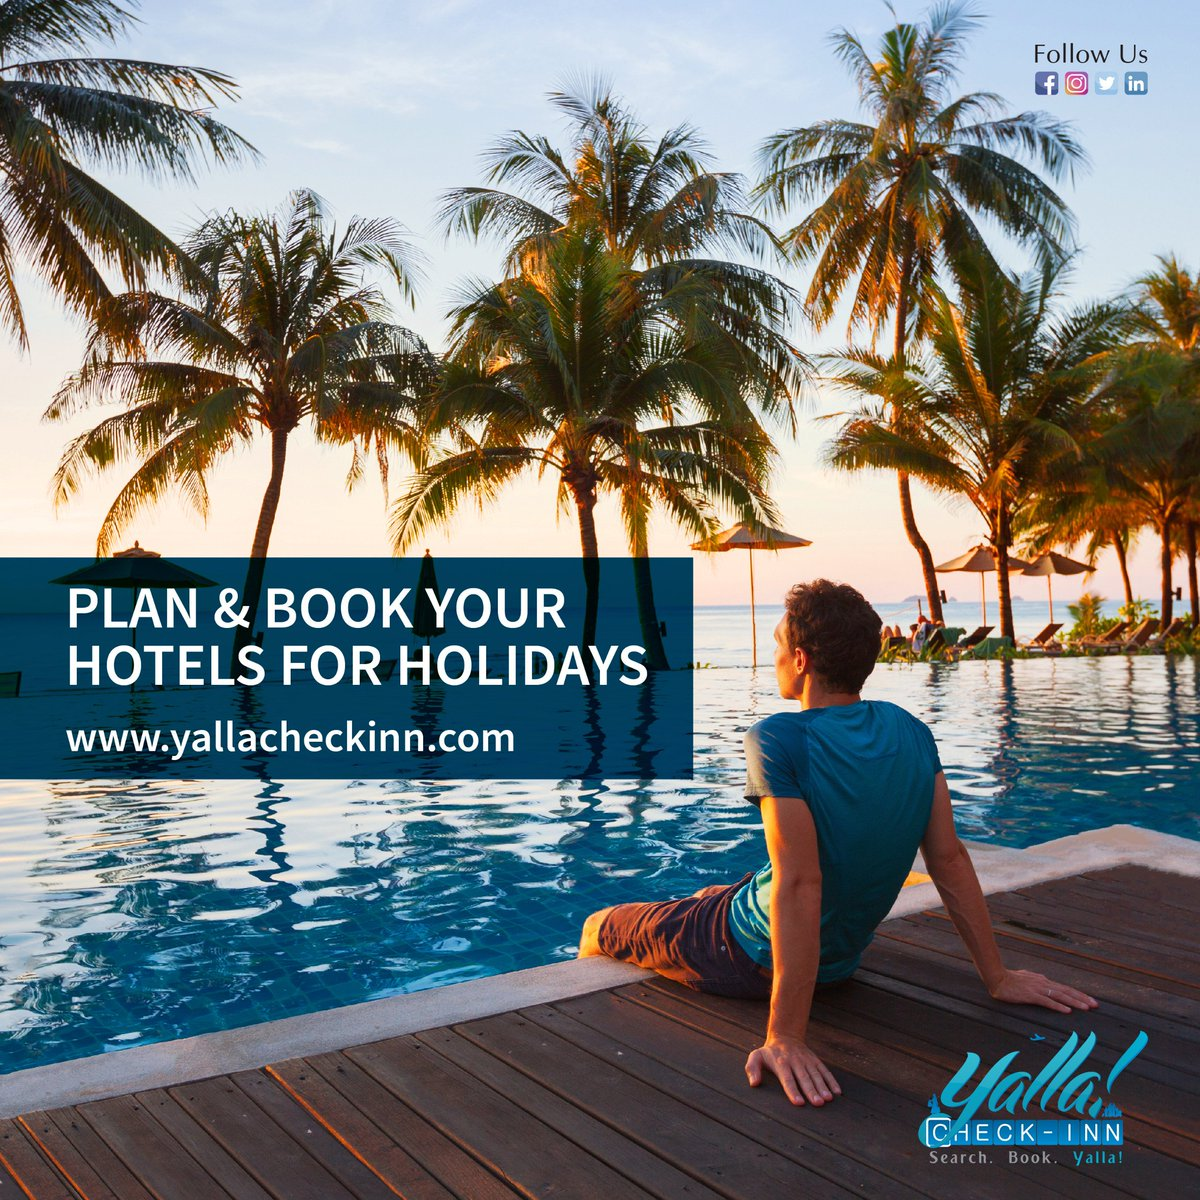 Plan & #Book your #Hotels for #Holiday Trips  https://t.co/baScaL4E94 https://t.co/B3IgdOzZla